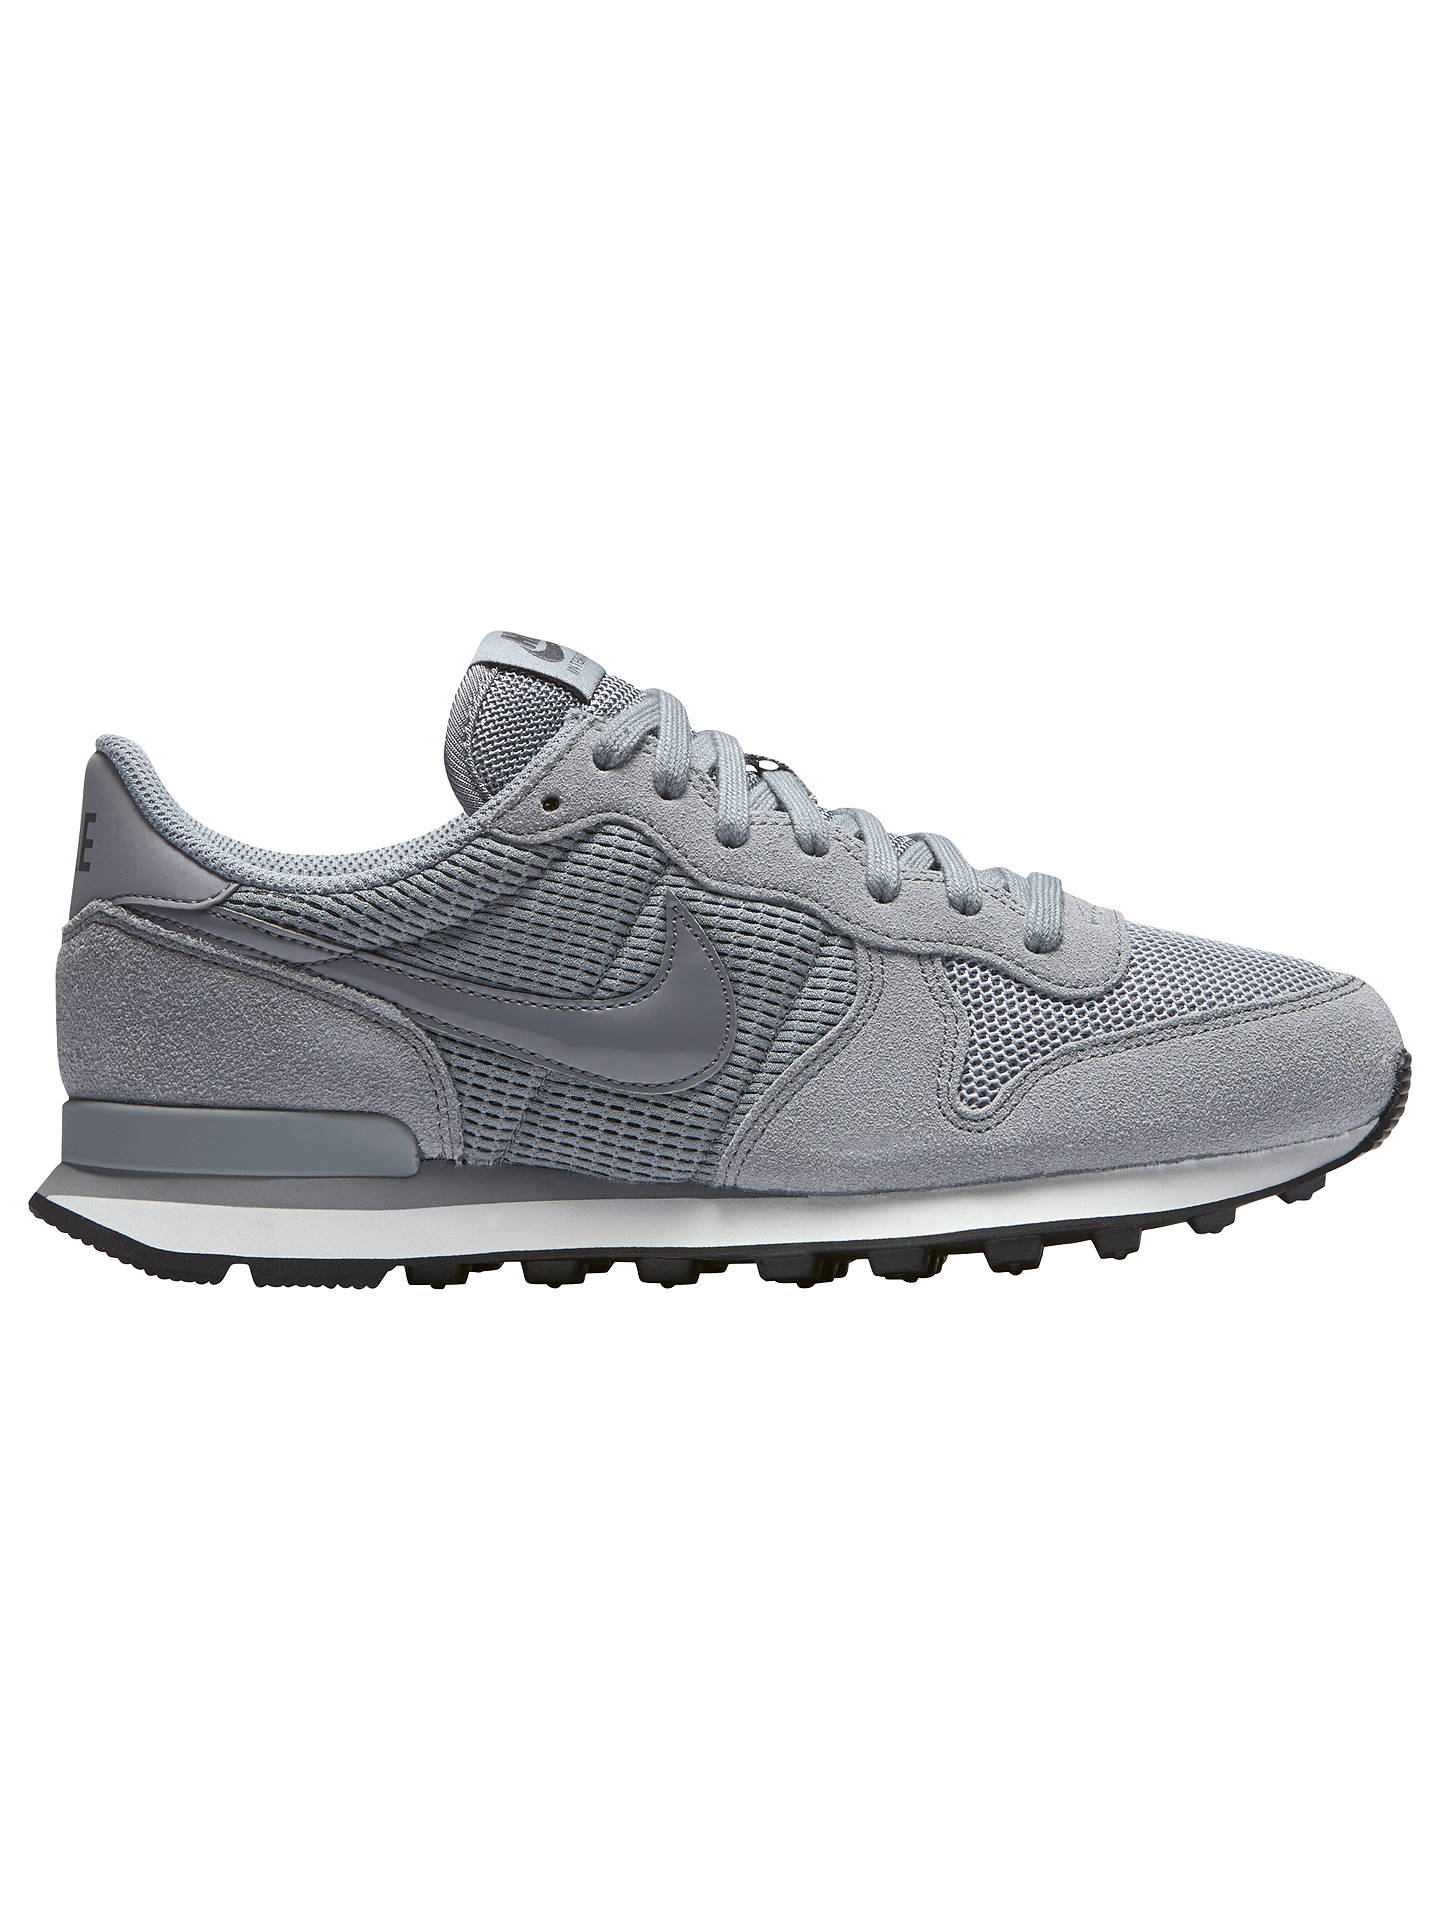 huge selection of ea17e 95361 Buy Nike Internationalist Women s Trainers, Stealth Dark Grey Summit White,  4 Online at ...